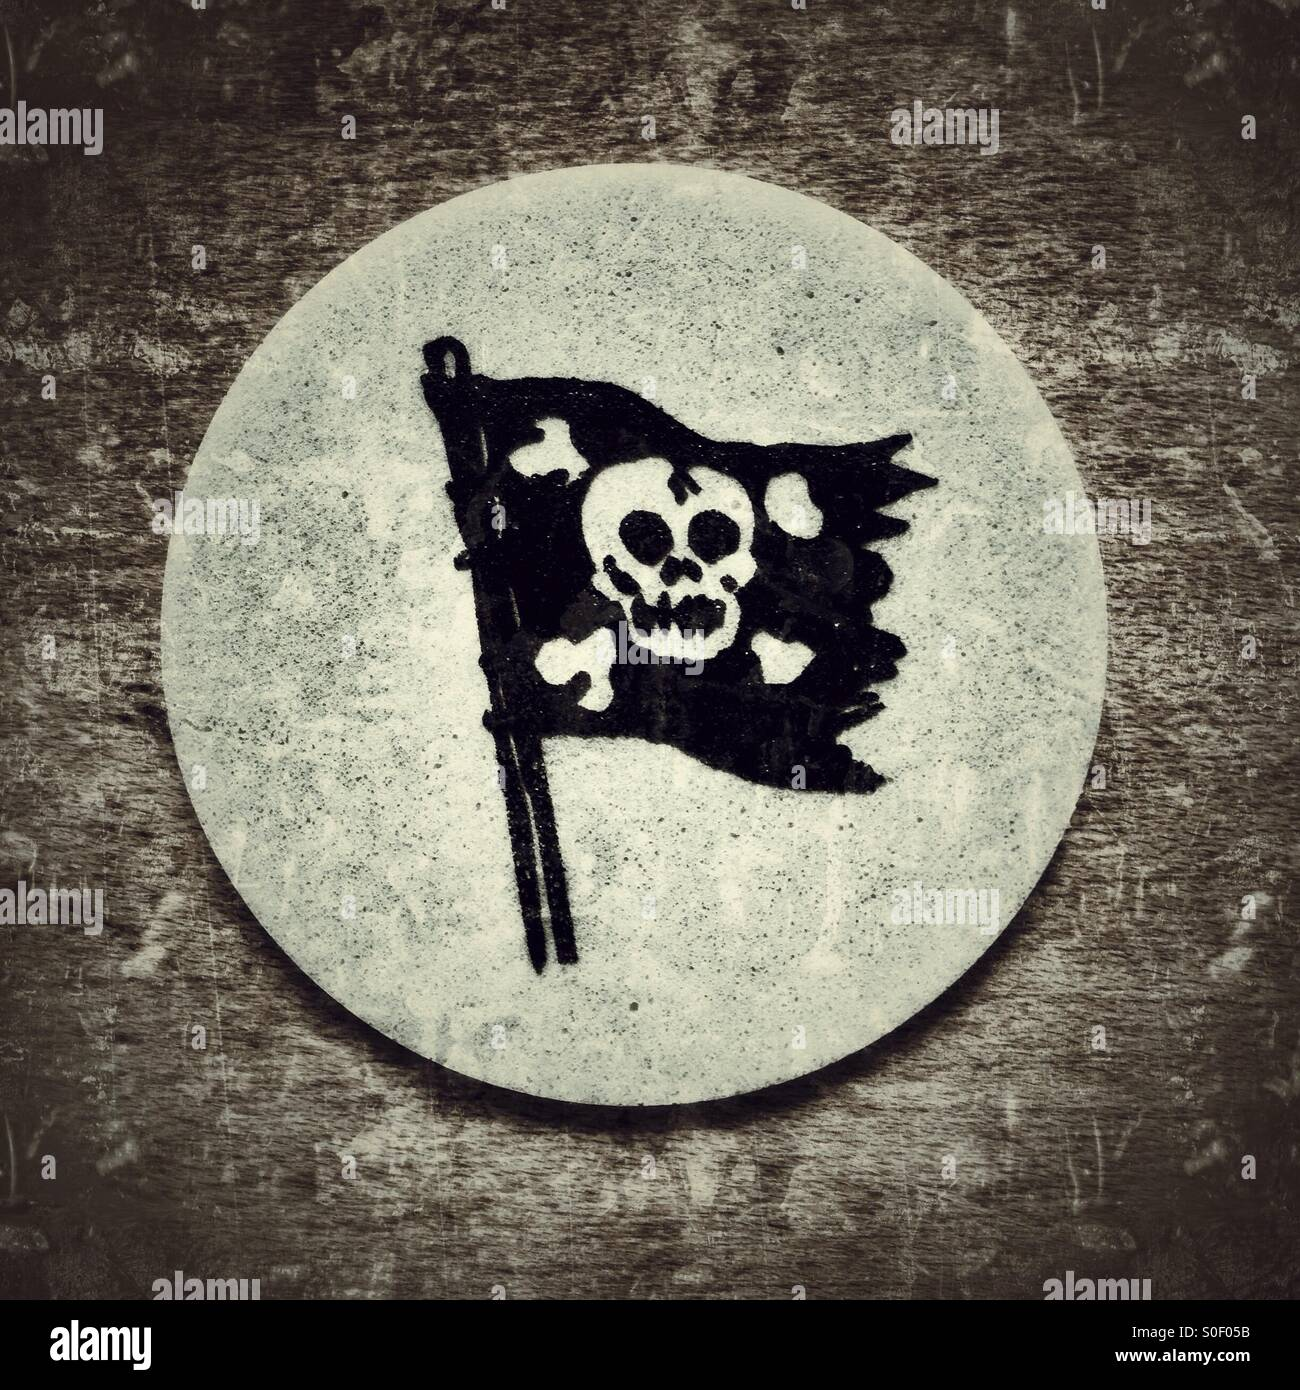 pirate tattoo photos pirate tattoo images alamy. Black Bedroom Furniture Sets. Home Design Ideas